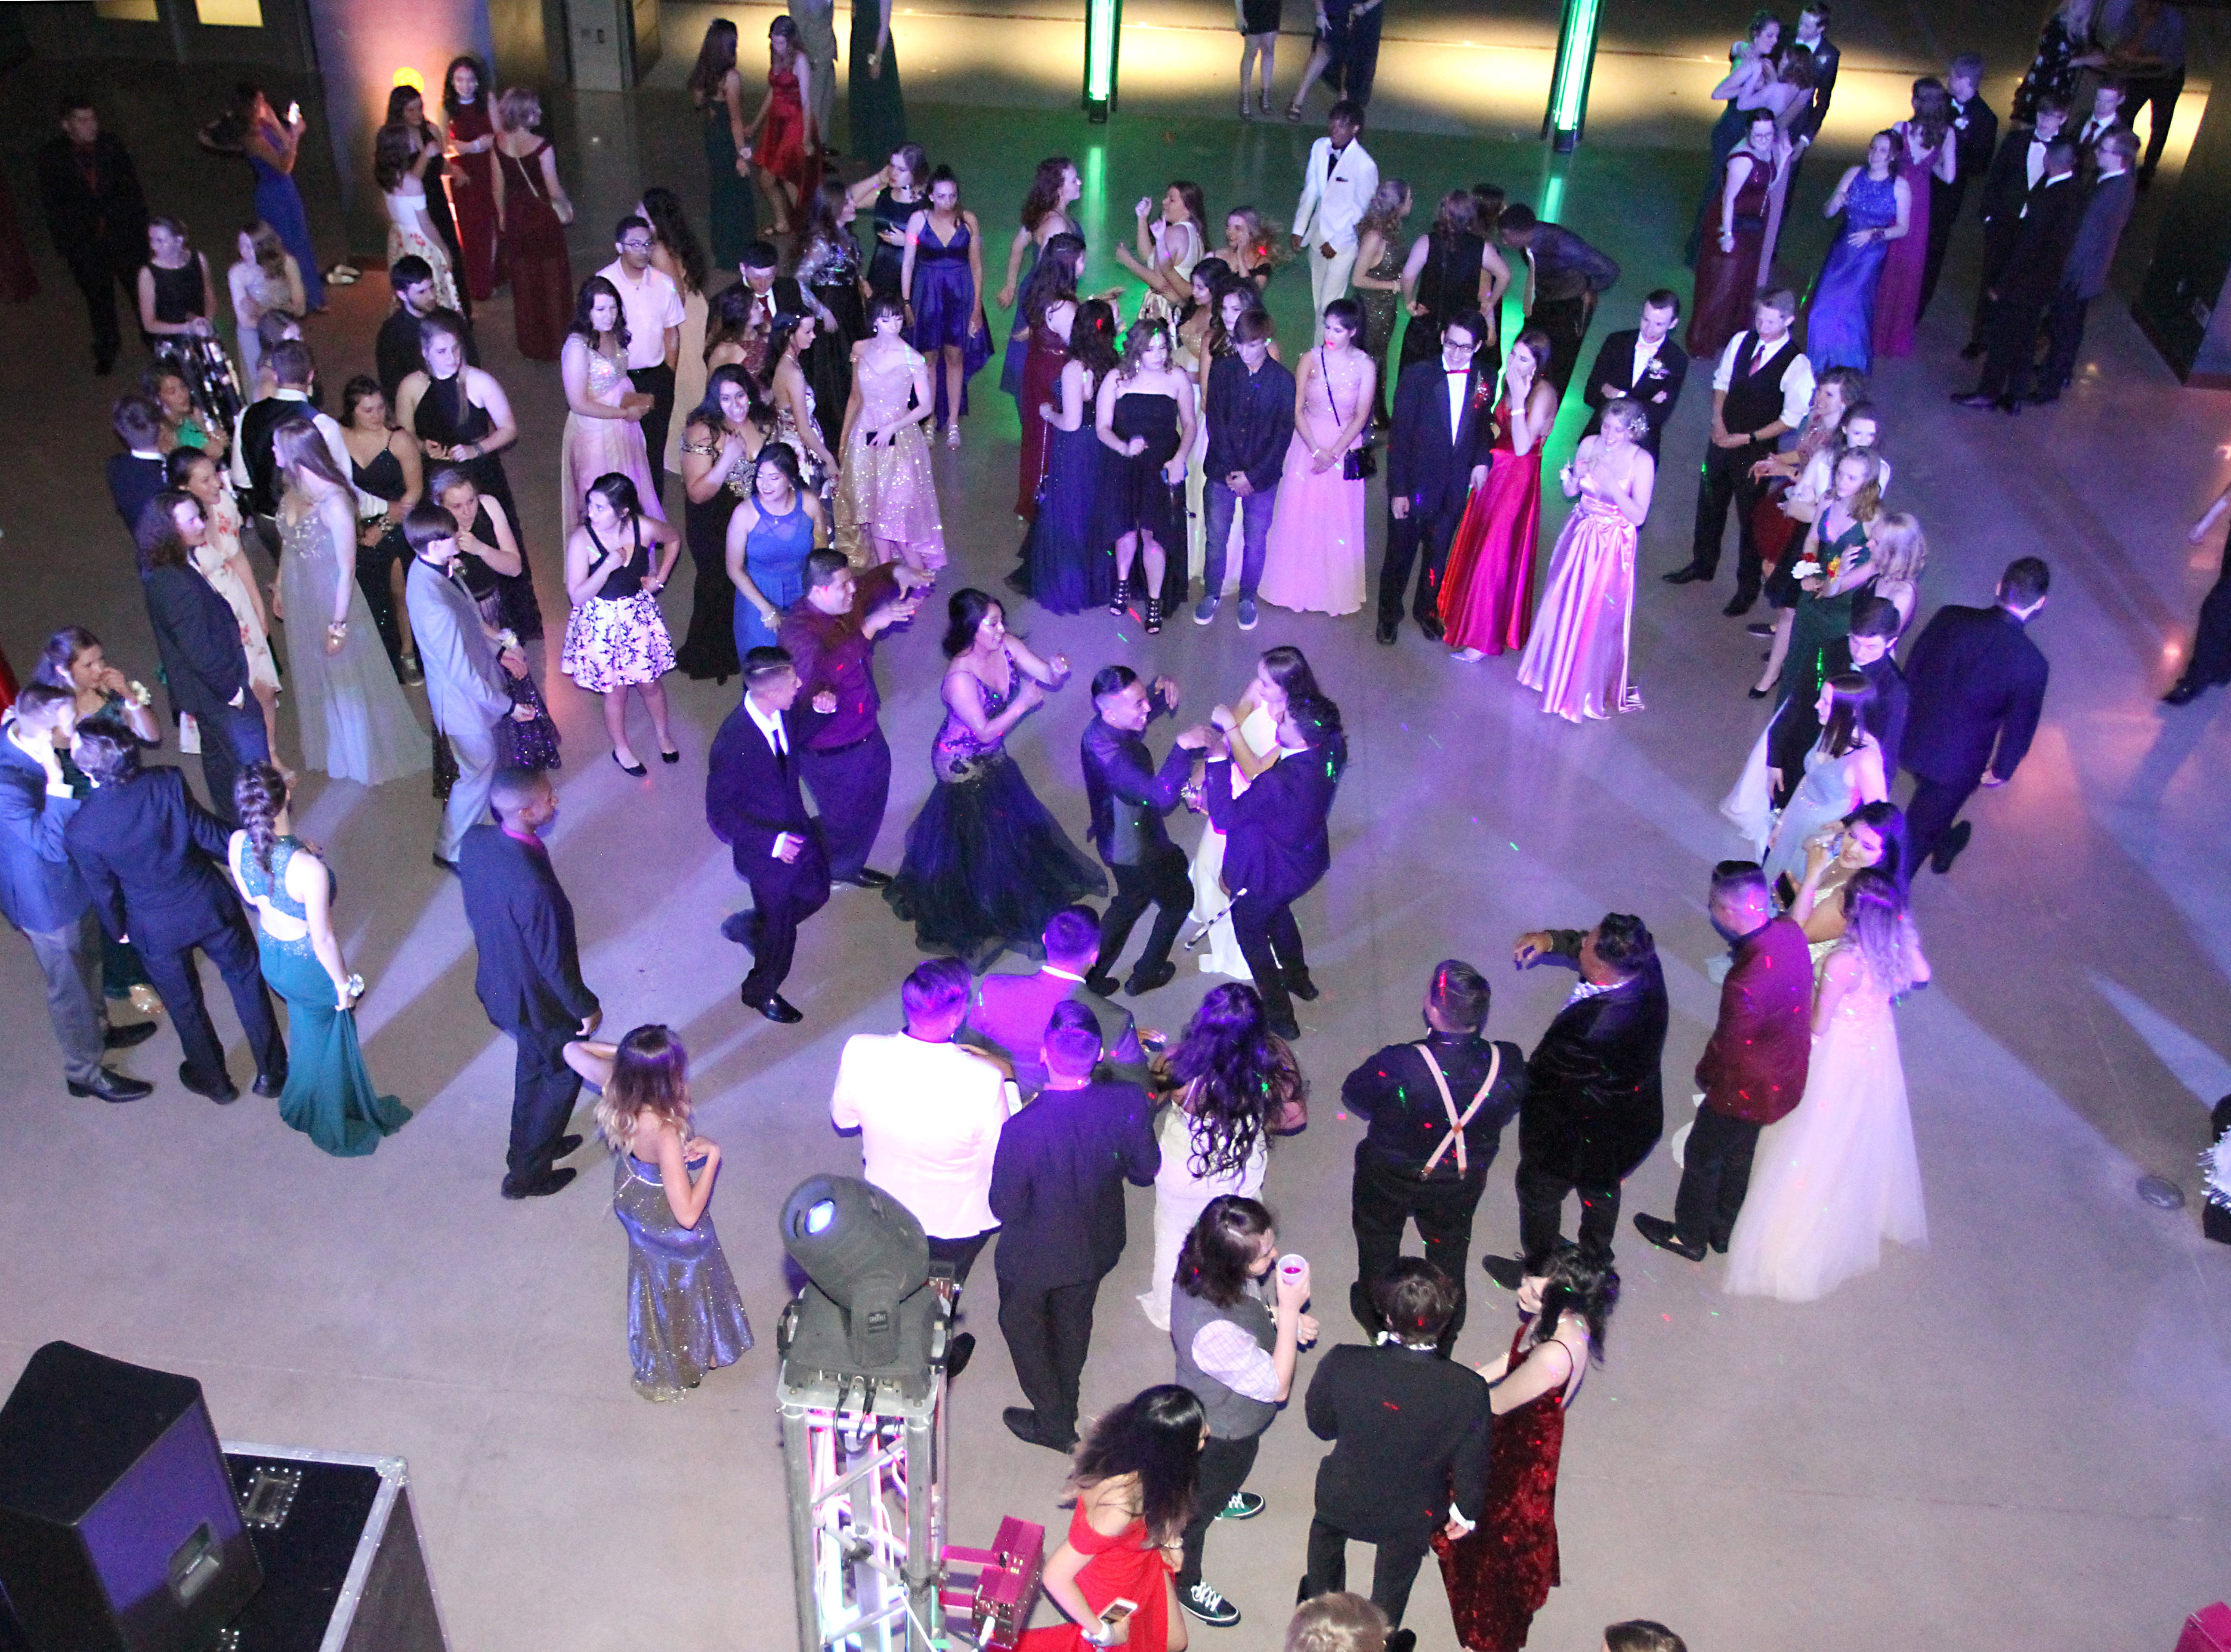 Joel Blocker / For the ColoradoanFort Collins High School students dance the night away during their school prom held at Canvas stadium Saturday night.